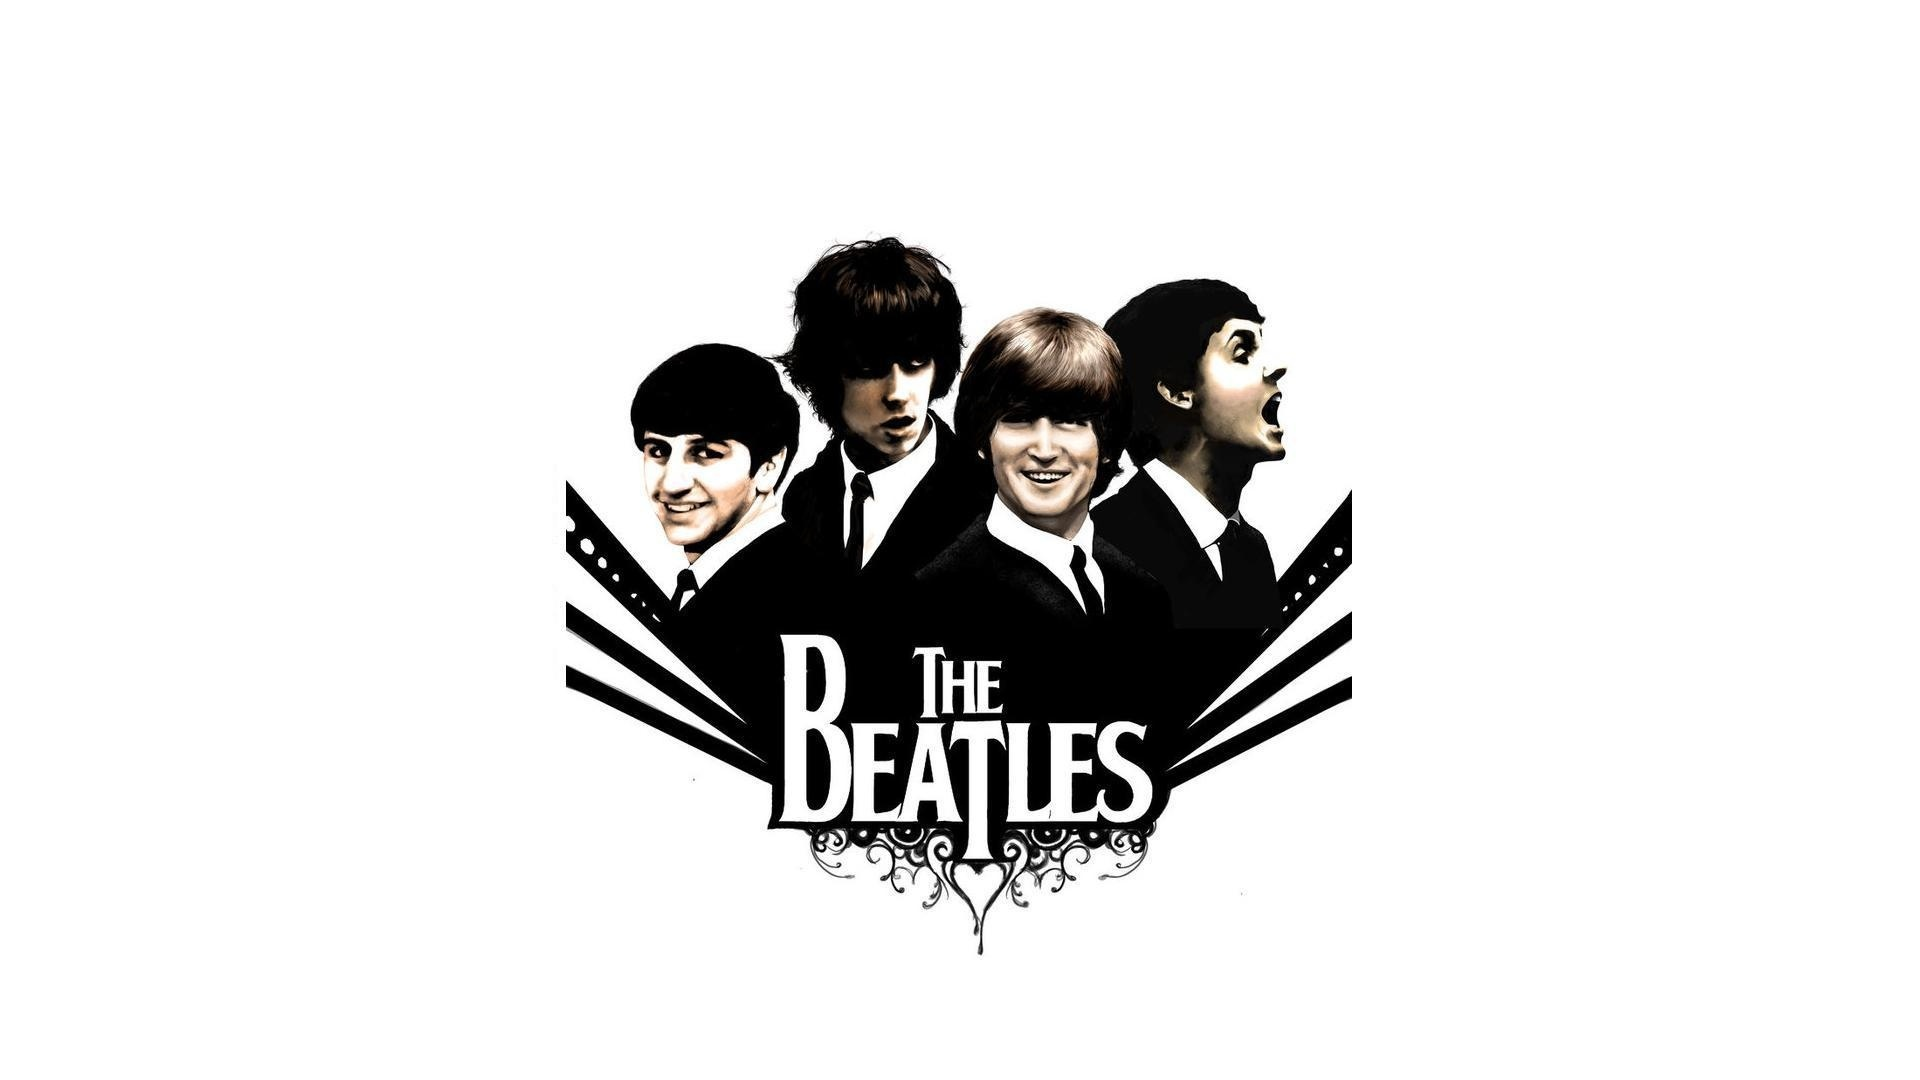 Abbey Road Wallpaper Hd The Beatles Full Hd Wallpaper And Background Image